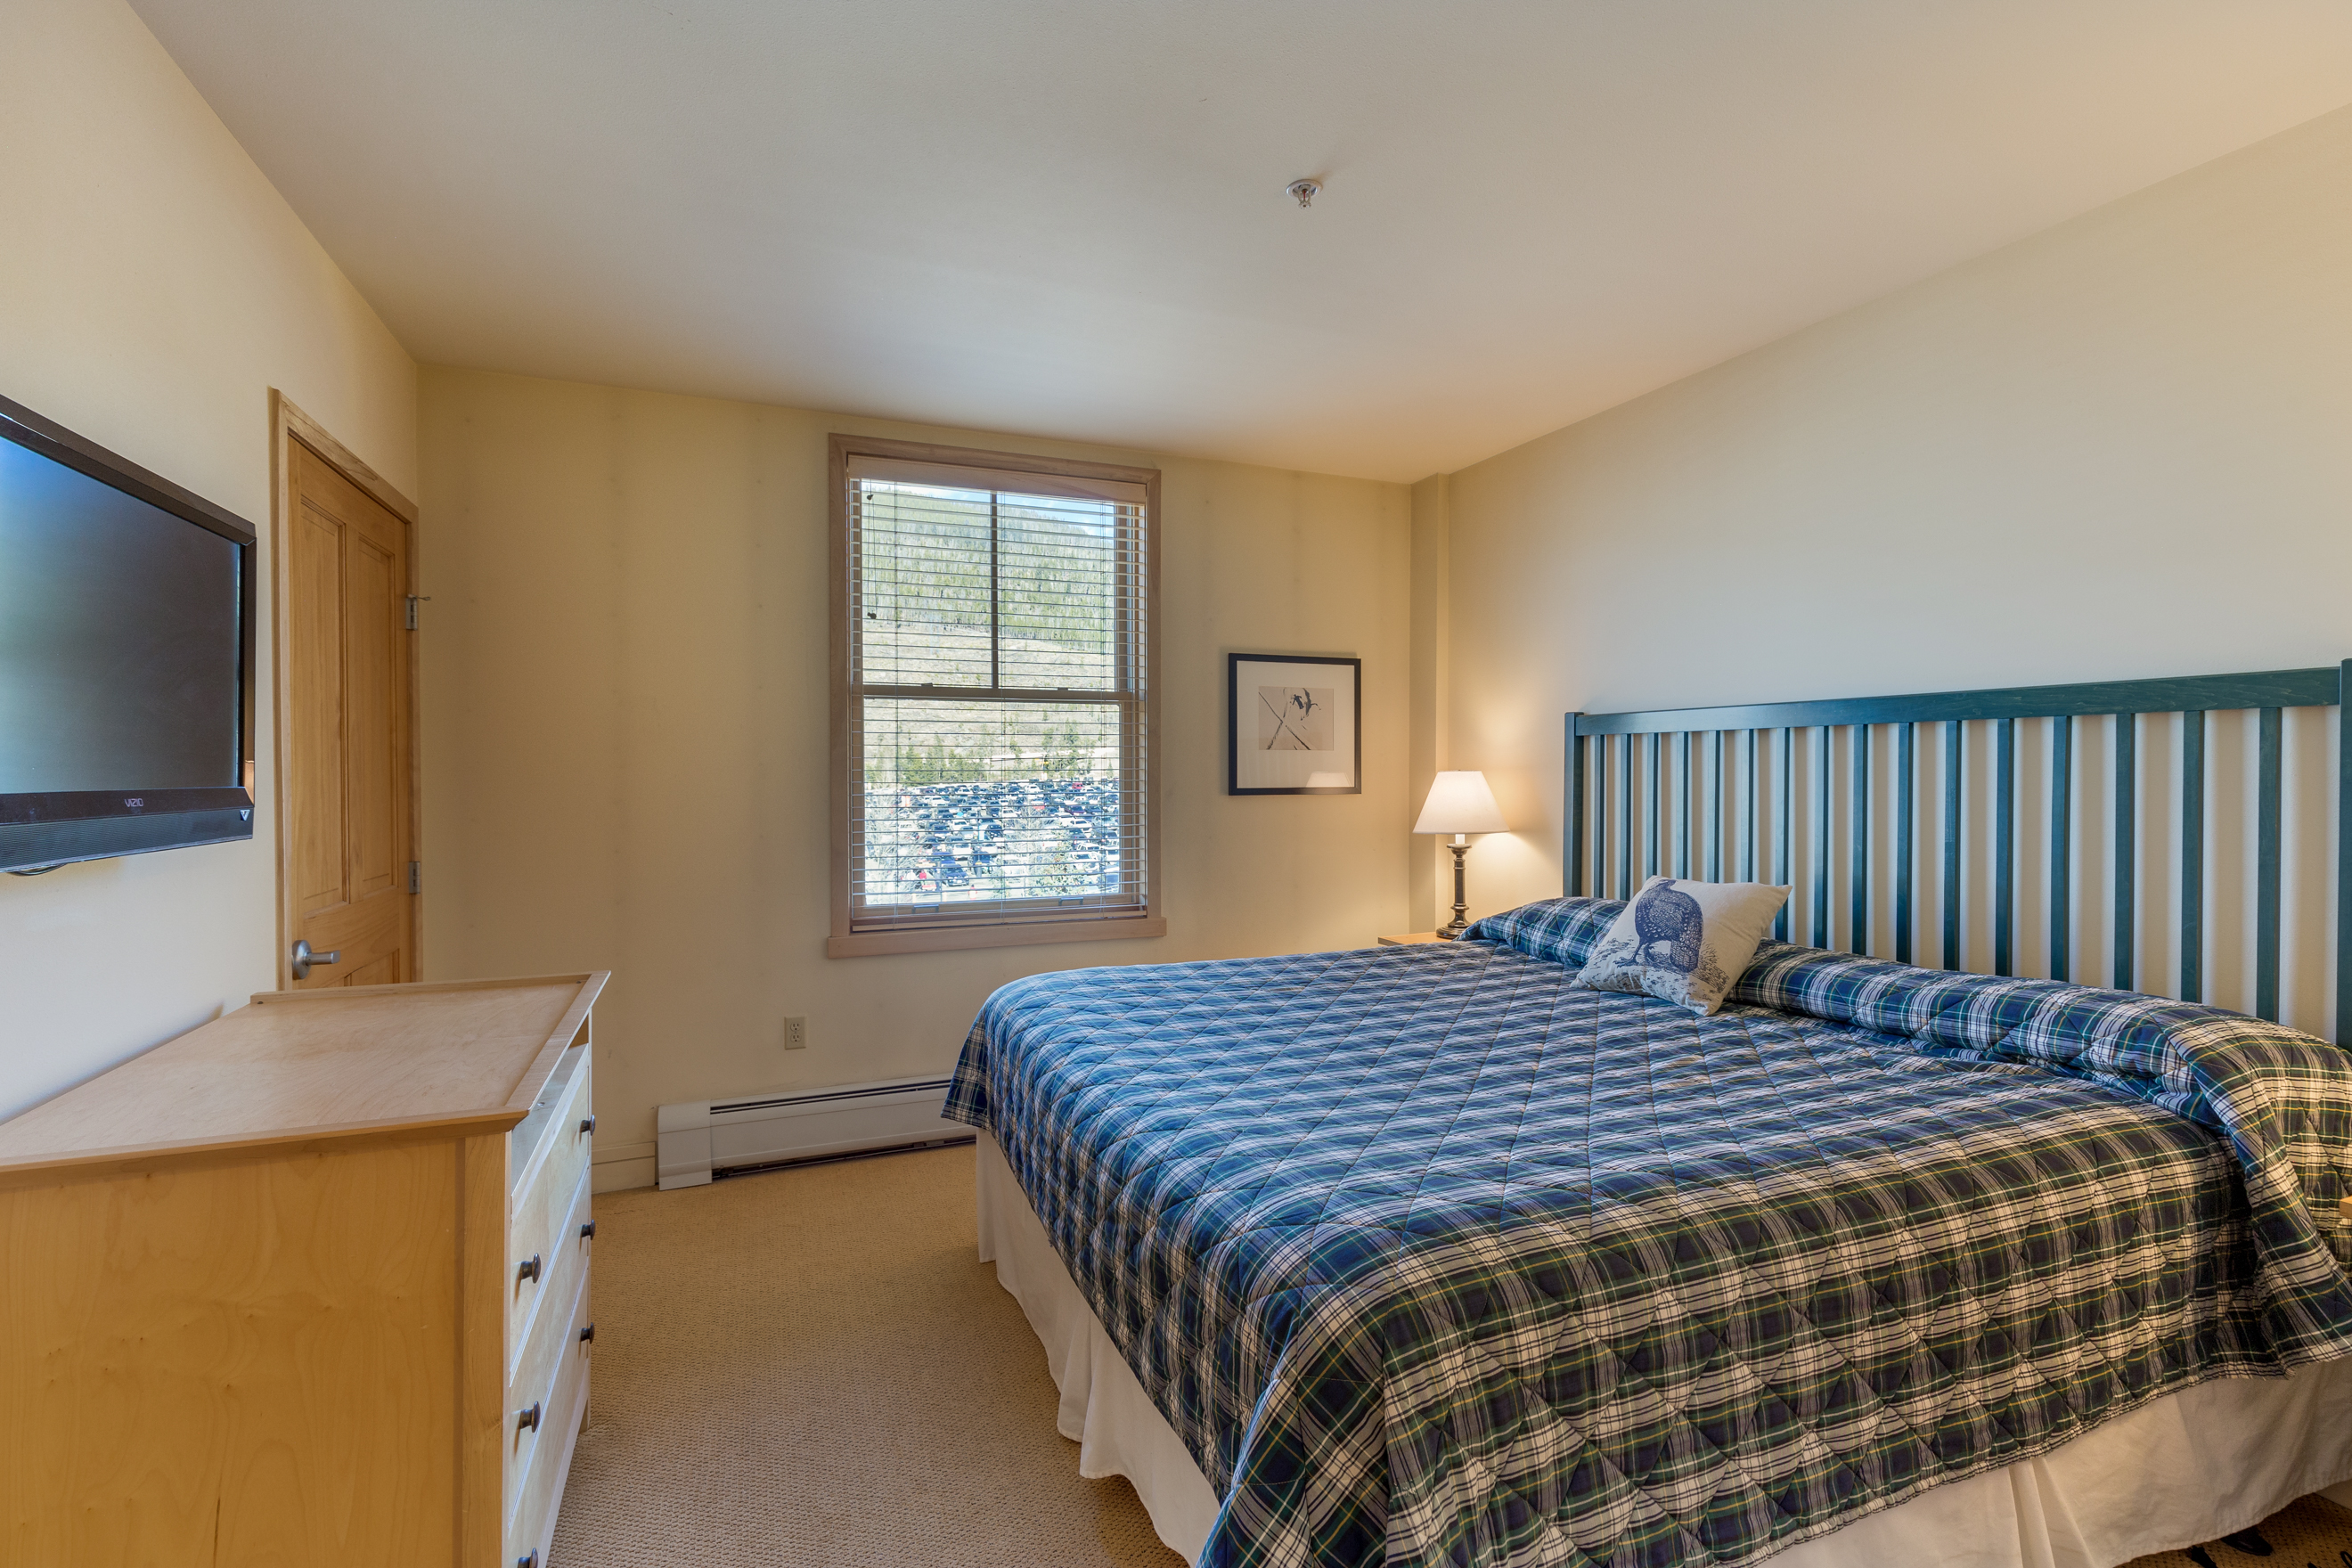 The guest bedroom features a king-sized bed, mounted flat screen TV and its own entrance to the guest bathroom.